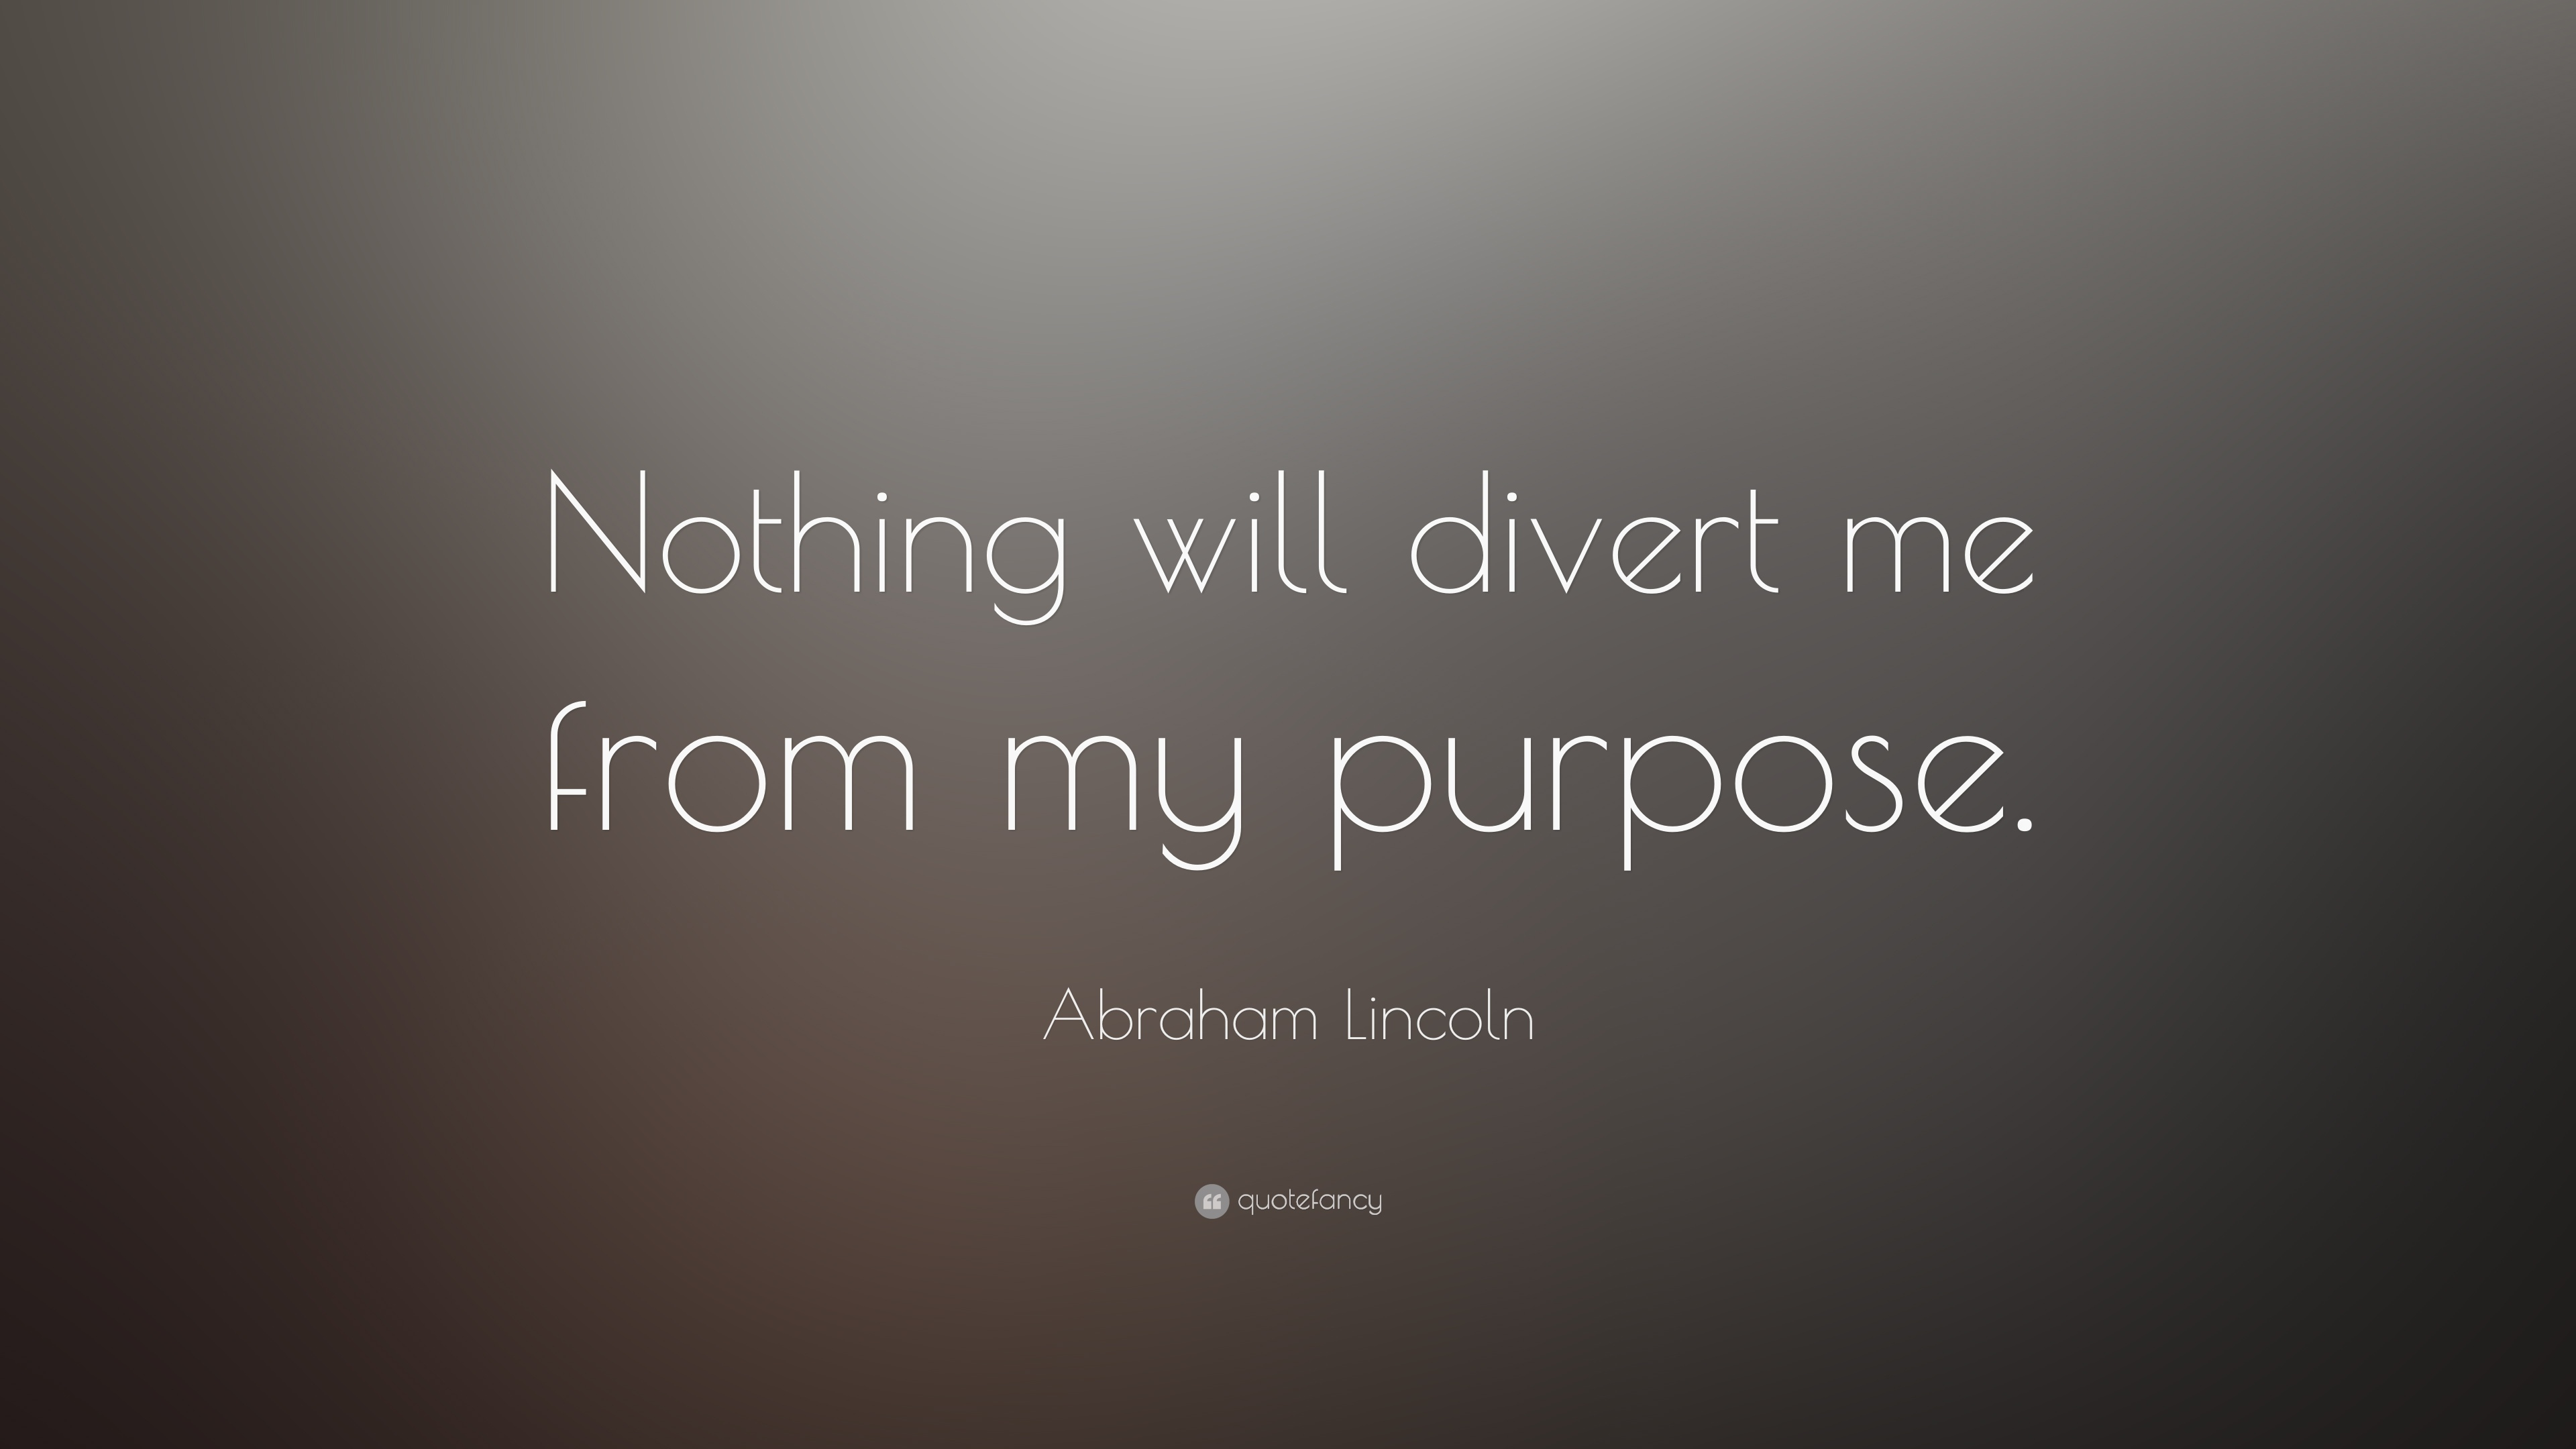 Exceptional My Purpose In Life Quotes Extraordinary Abraham Lincoln Quote U201cNothing Will  Divert Me From My